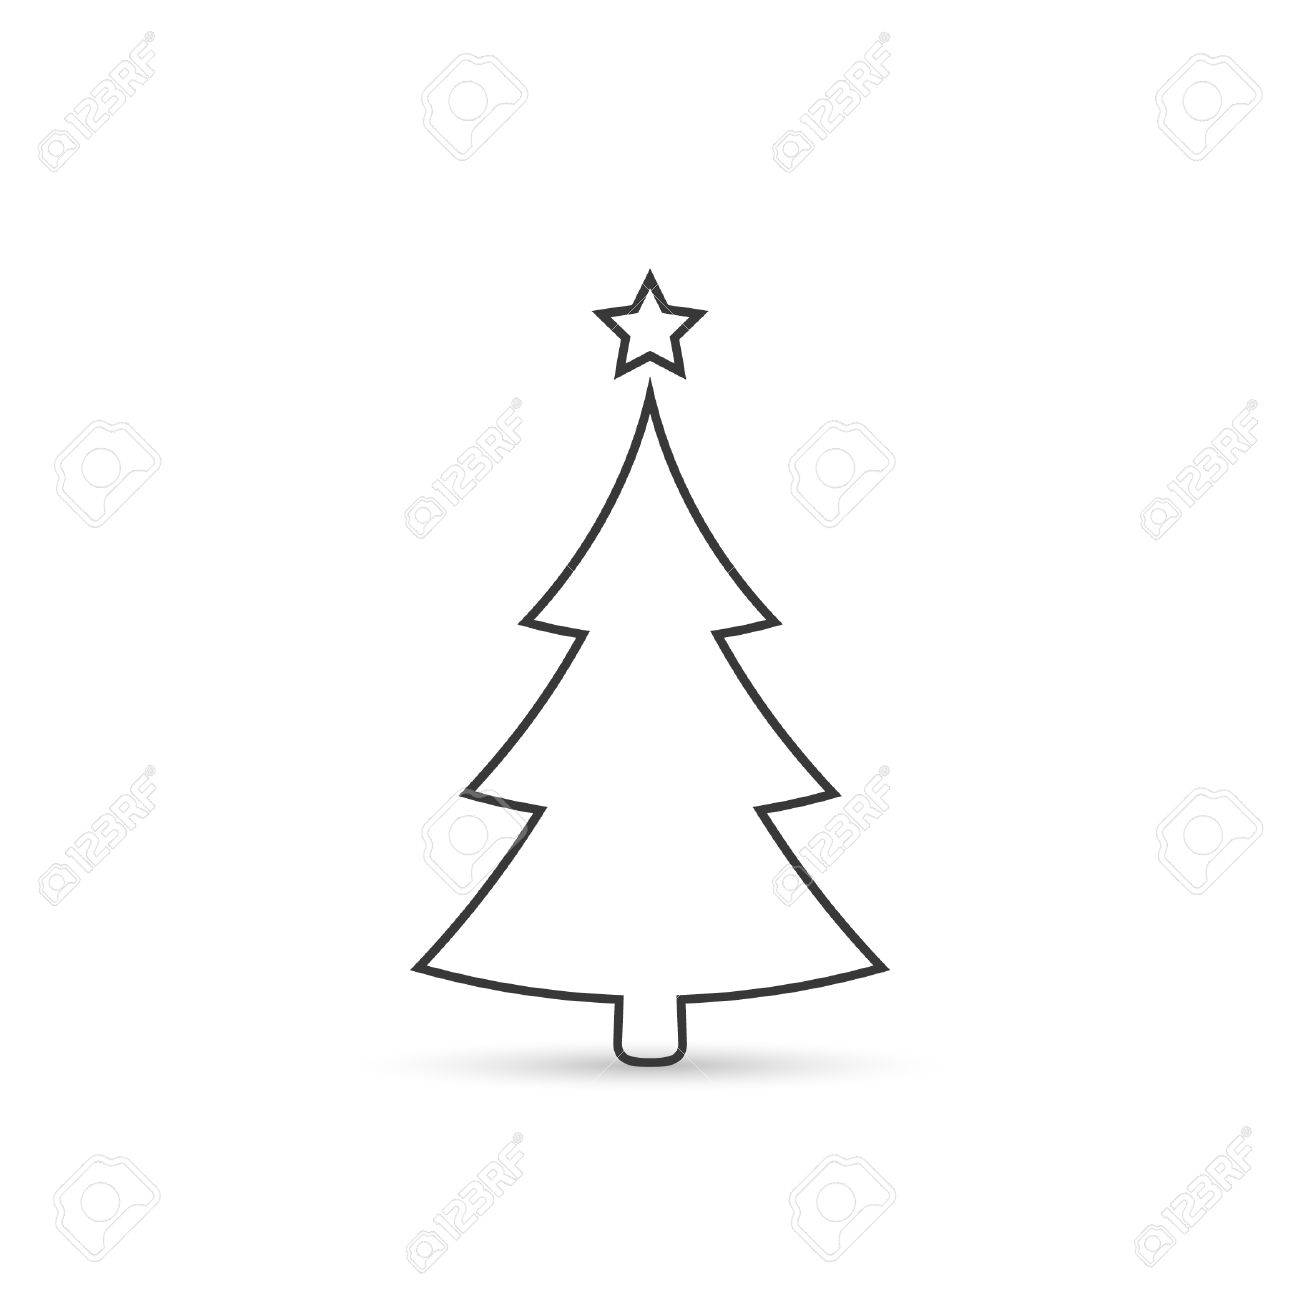 Christmas Tree Outline Mokka Commongroundsapex Co